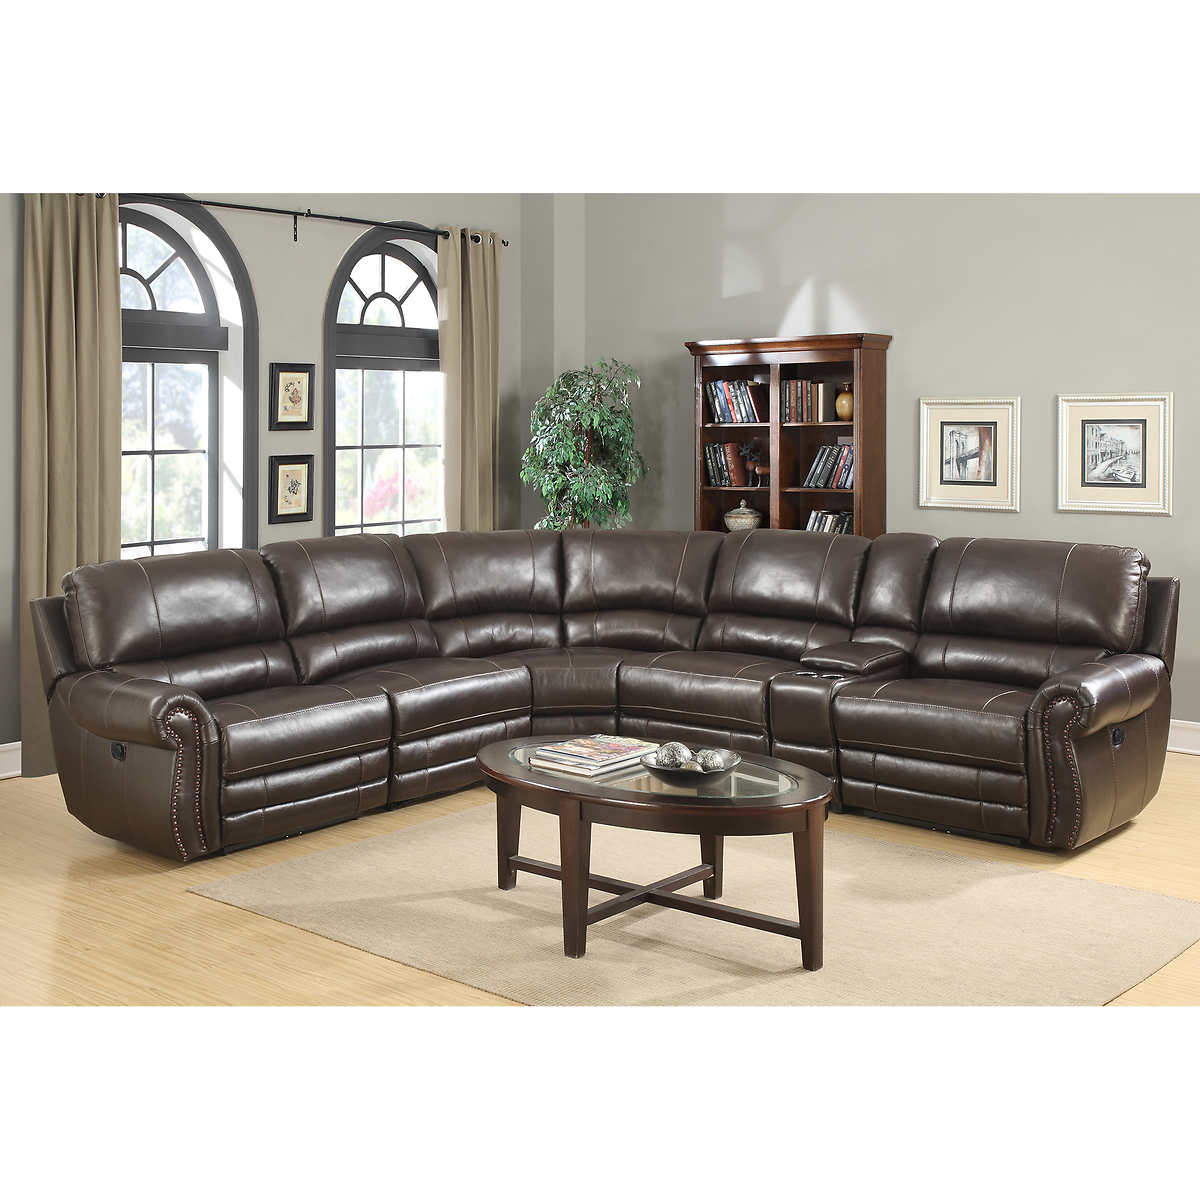 Costco Leather Sectional | Sectional Leather Sofas | Leather Sofa and Loveseat